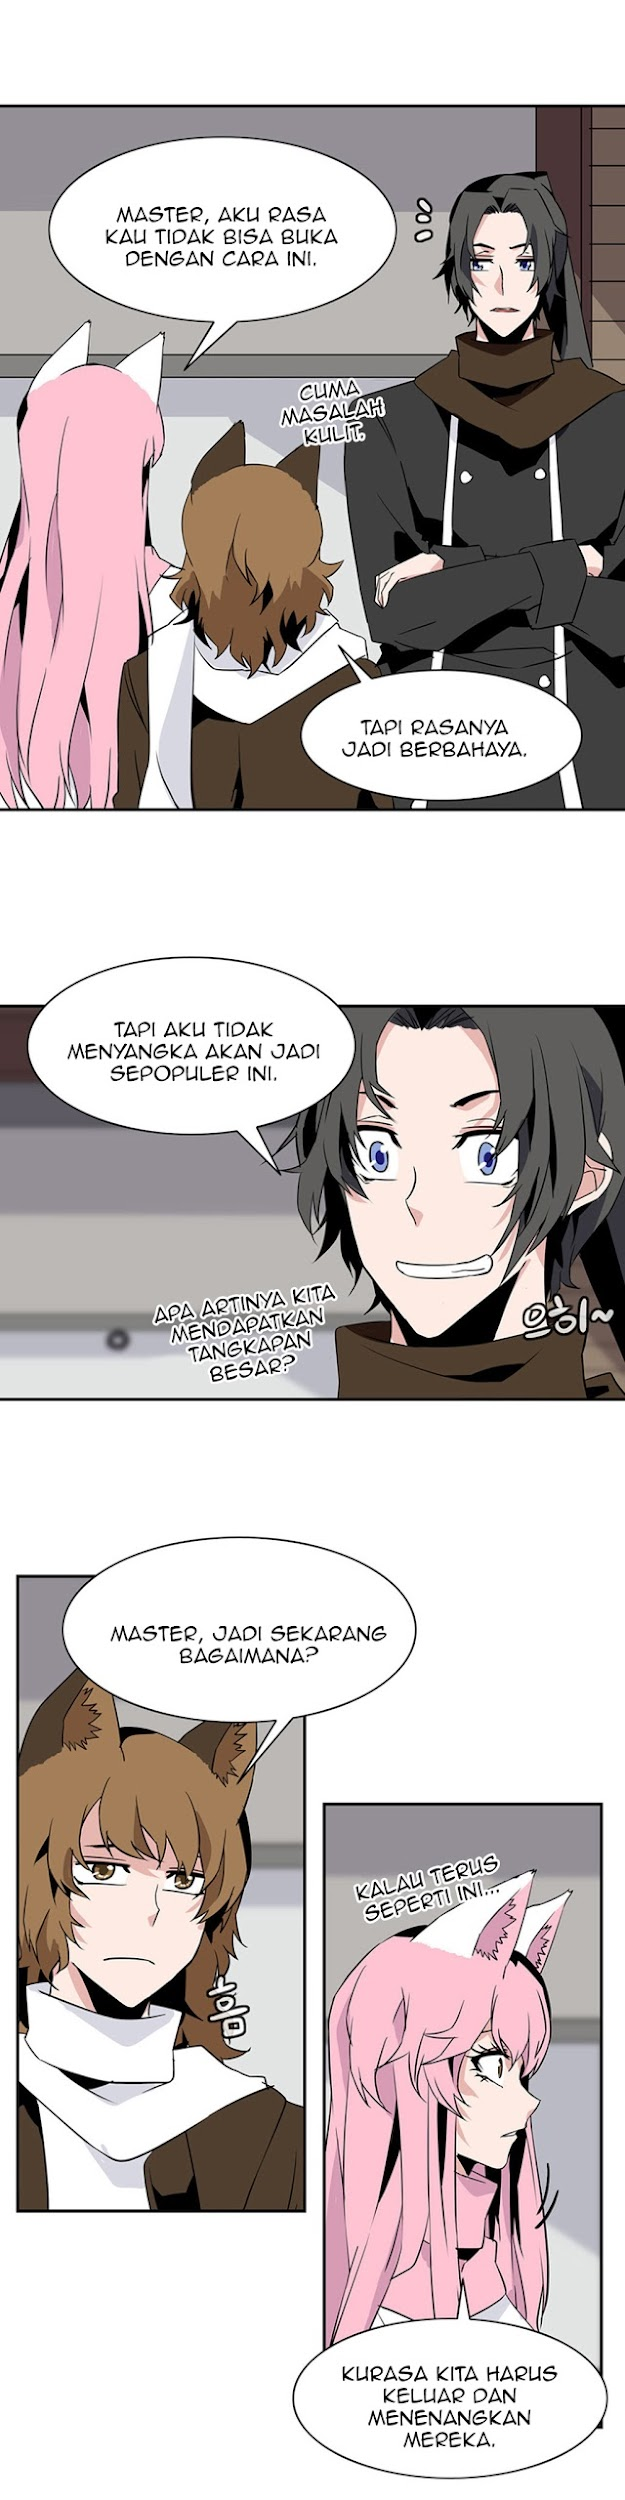 Dilarang COPAS - situs resmi www.mangacanblog.com - Komik wizardly tower 030 - chapter 30 31 Indonesia wizardly tower 030 - chapter 30 Terbaru 13|Baca Manga Komik Indonesia|Mangacan